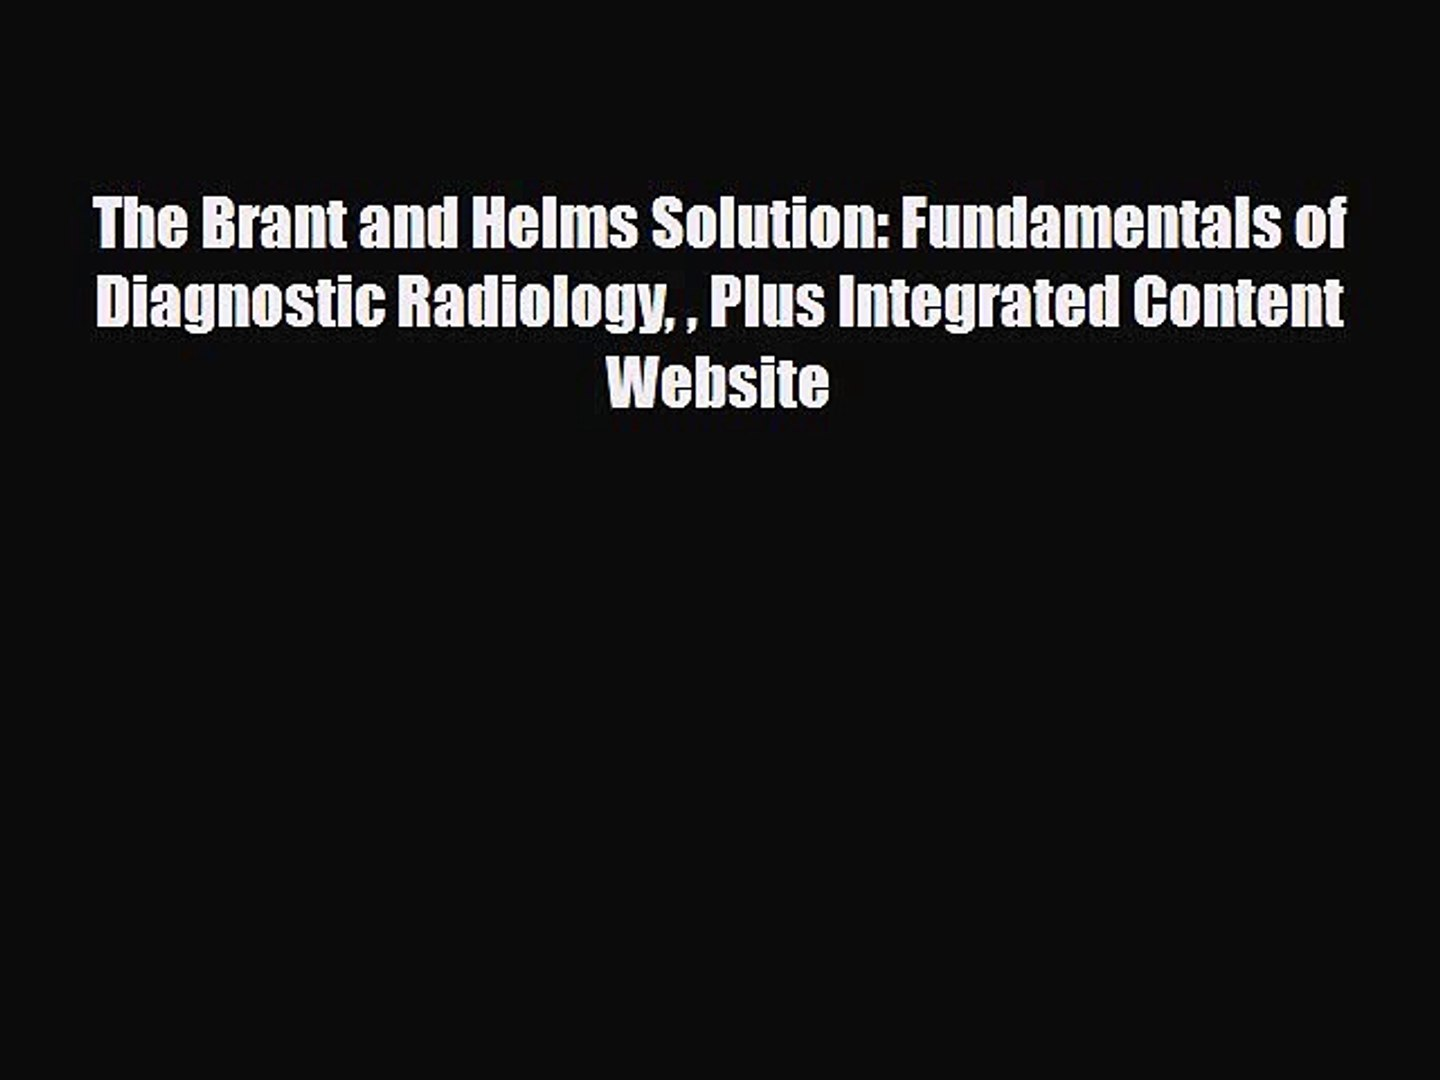 [PDF] The Brant and Helms Solution: Fundamentals of Diagnostic Radiology  Plus Integrated Content